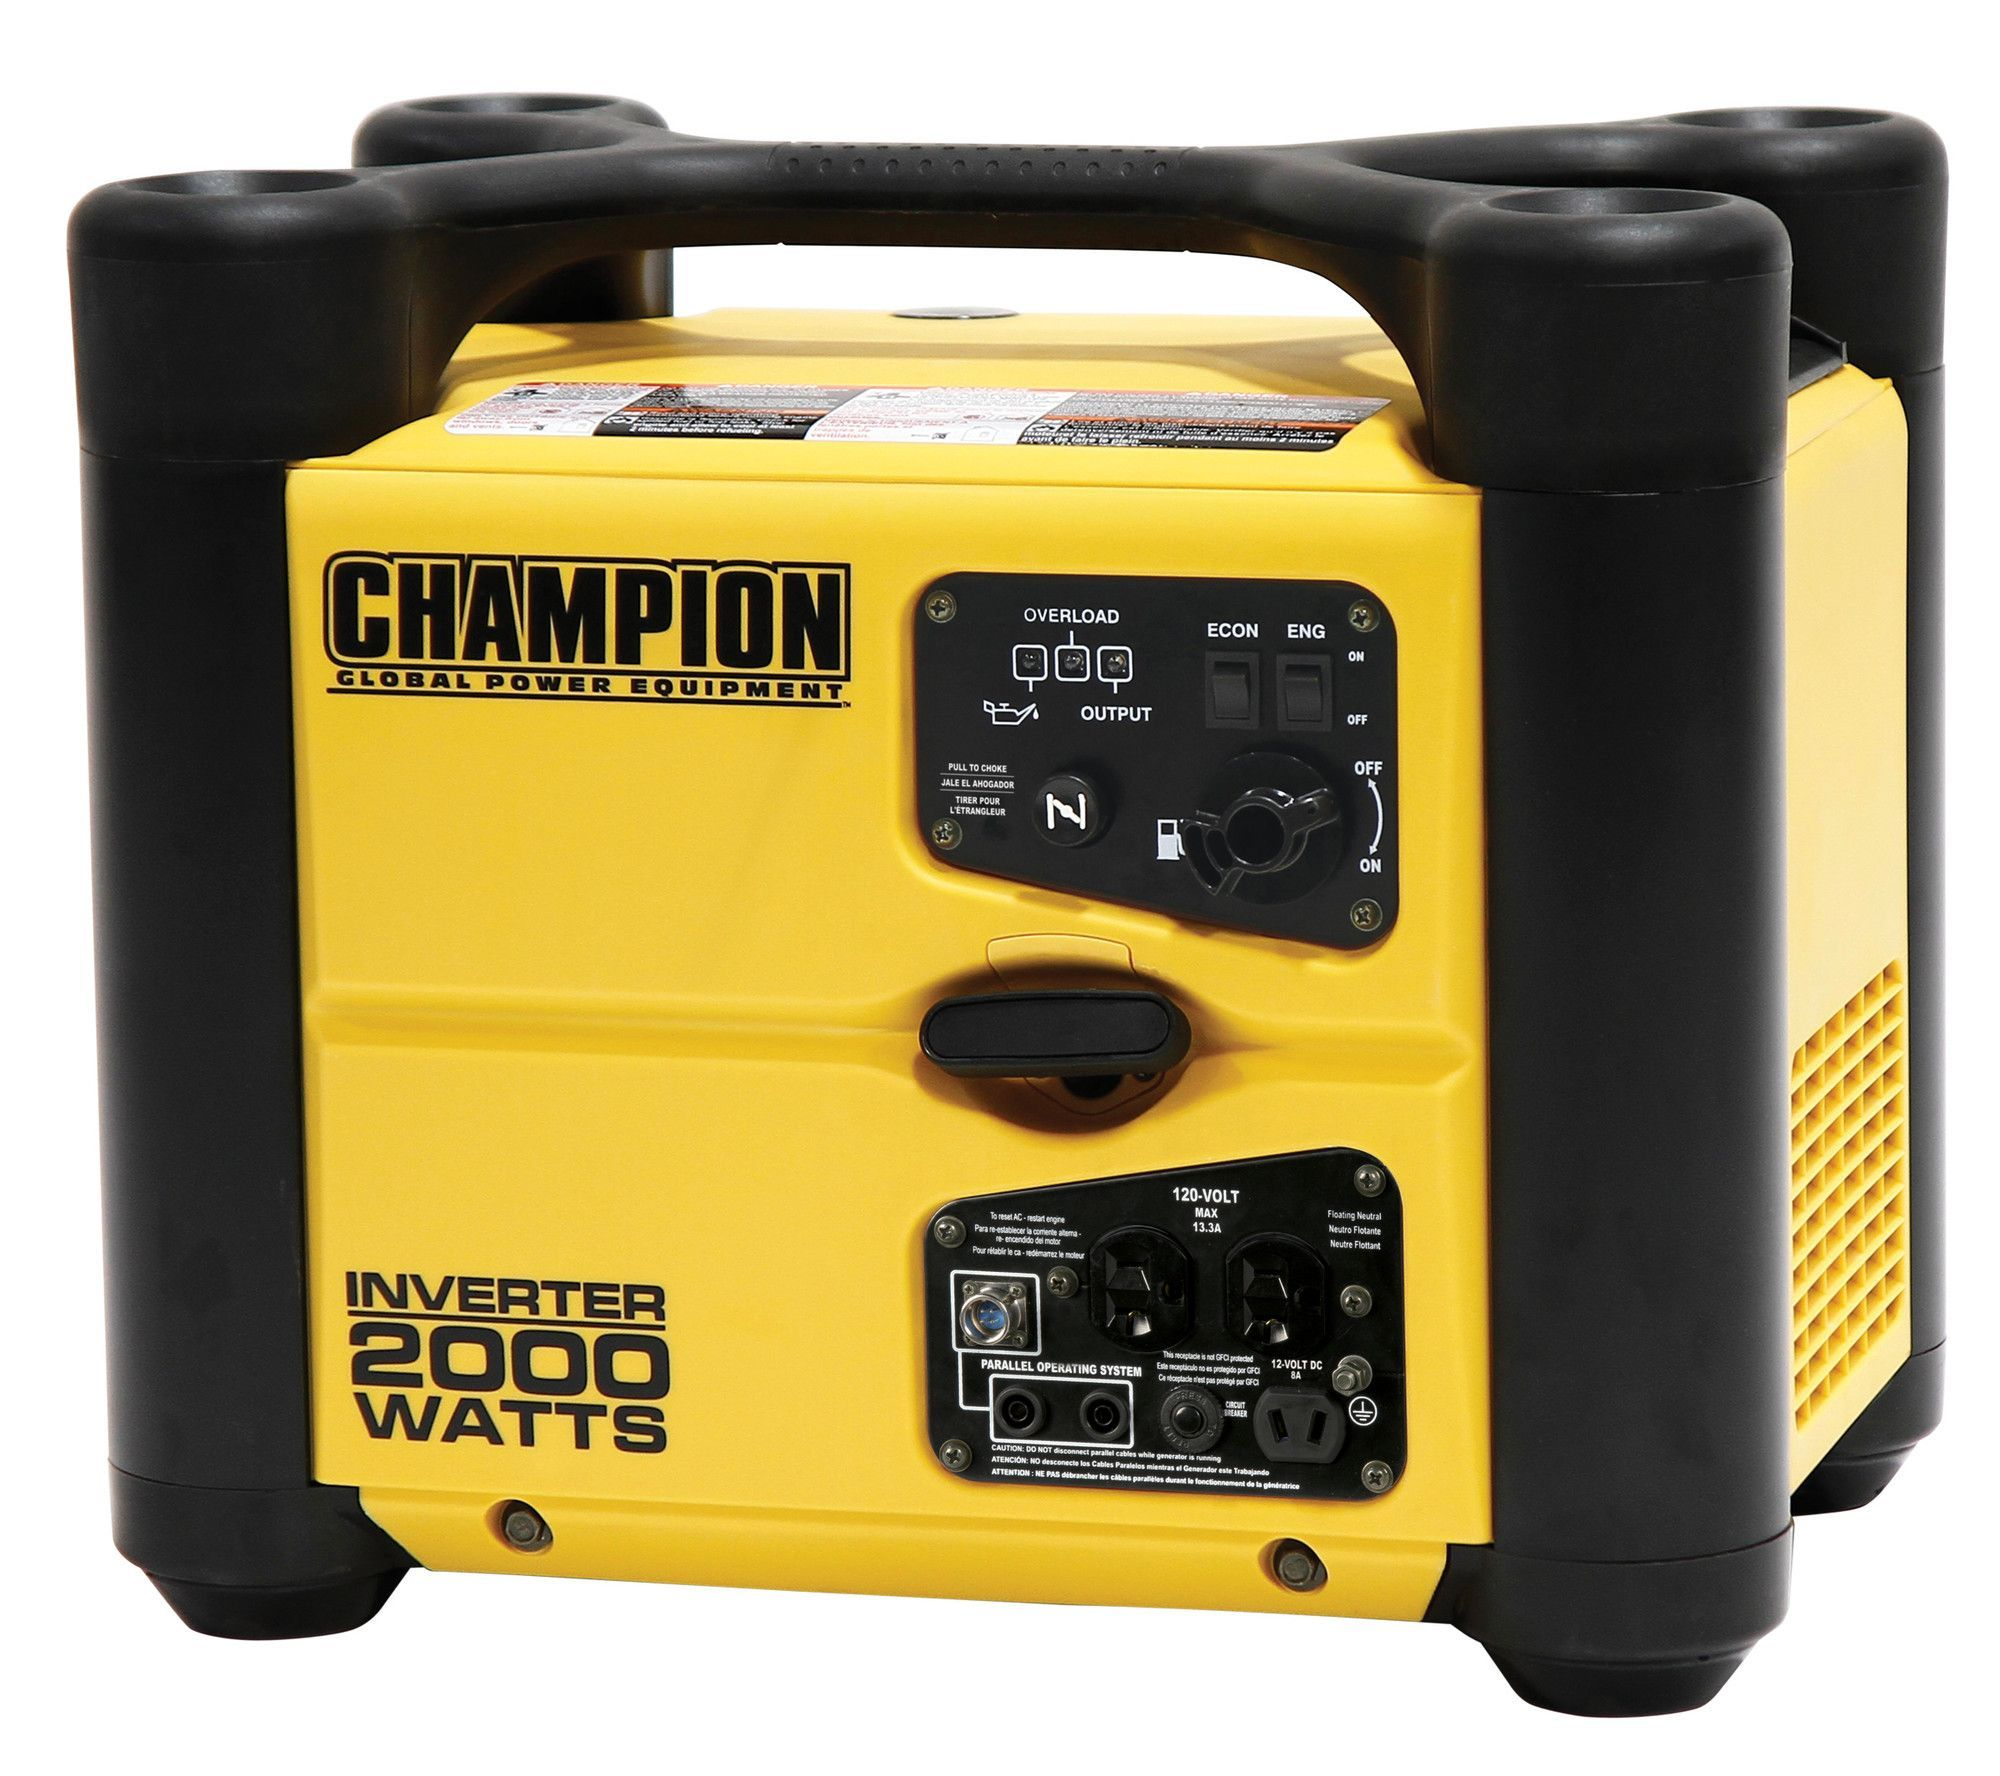 Champion Power Equipment i portable generator